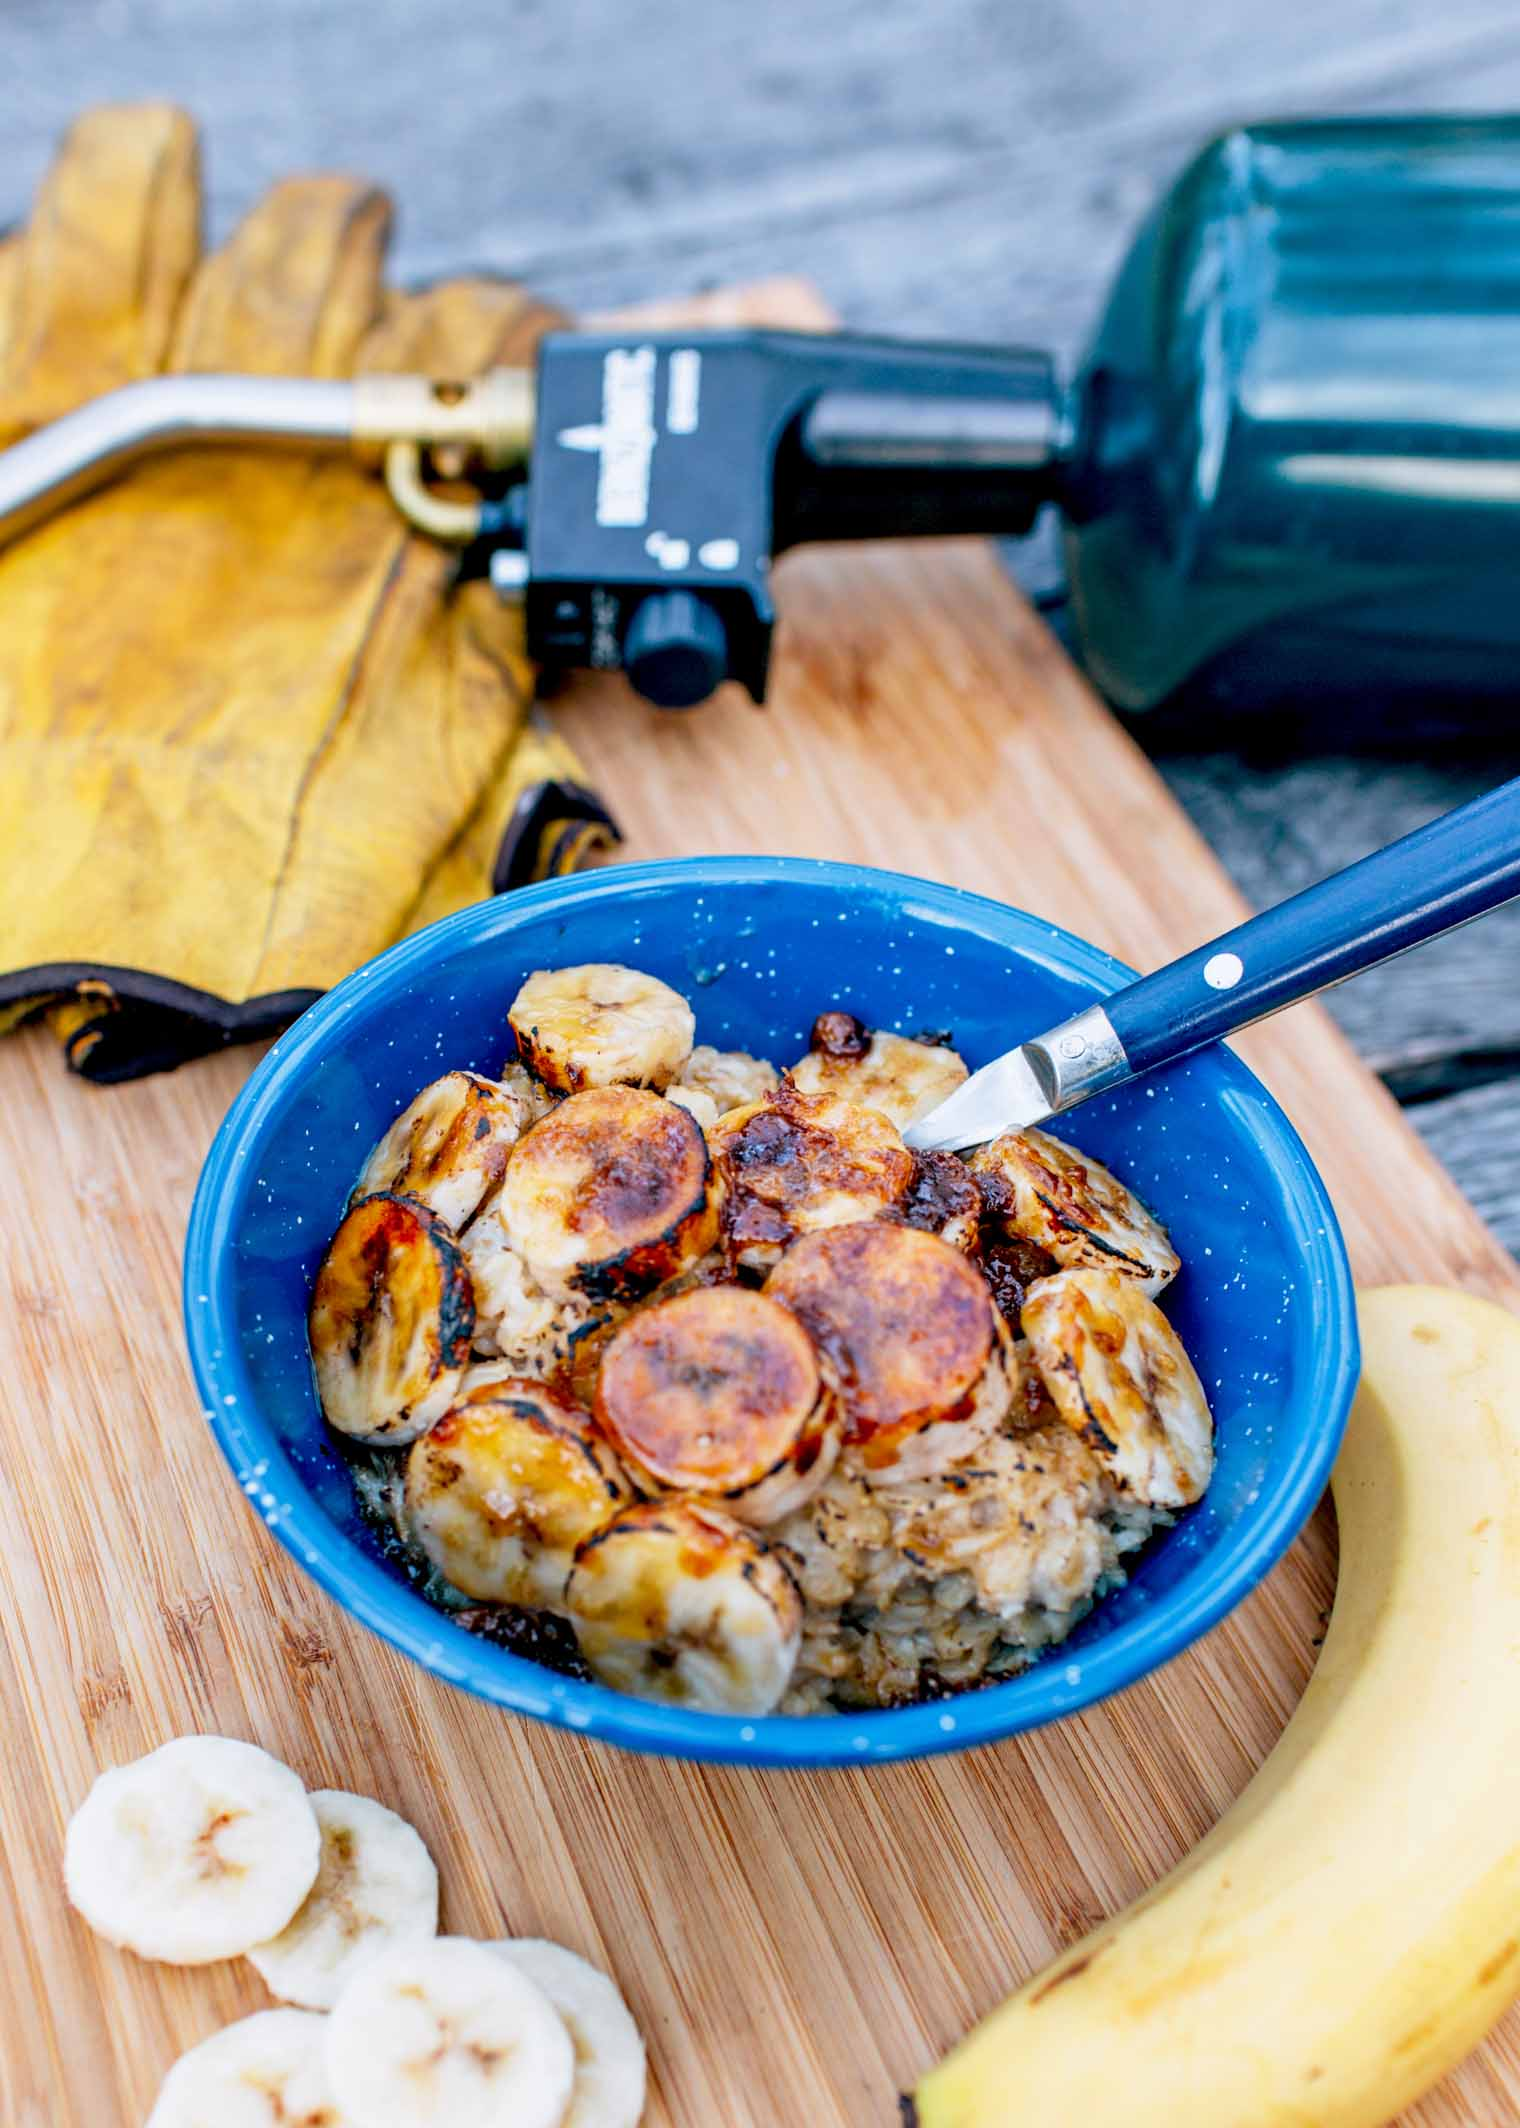 Take breakfast up a notch with this brûléed banana oatmeal.